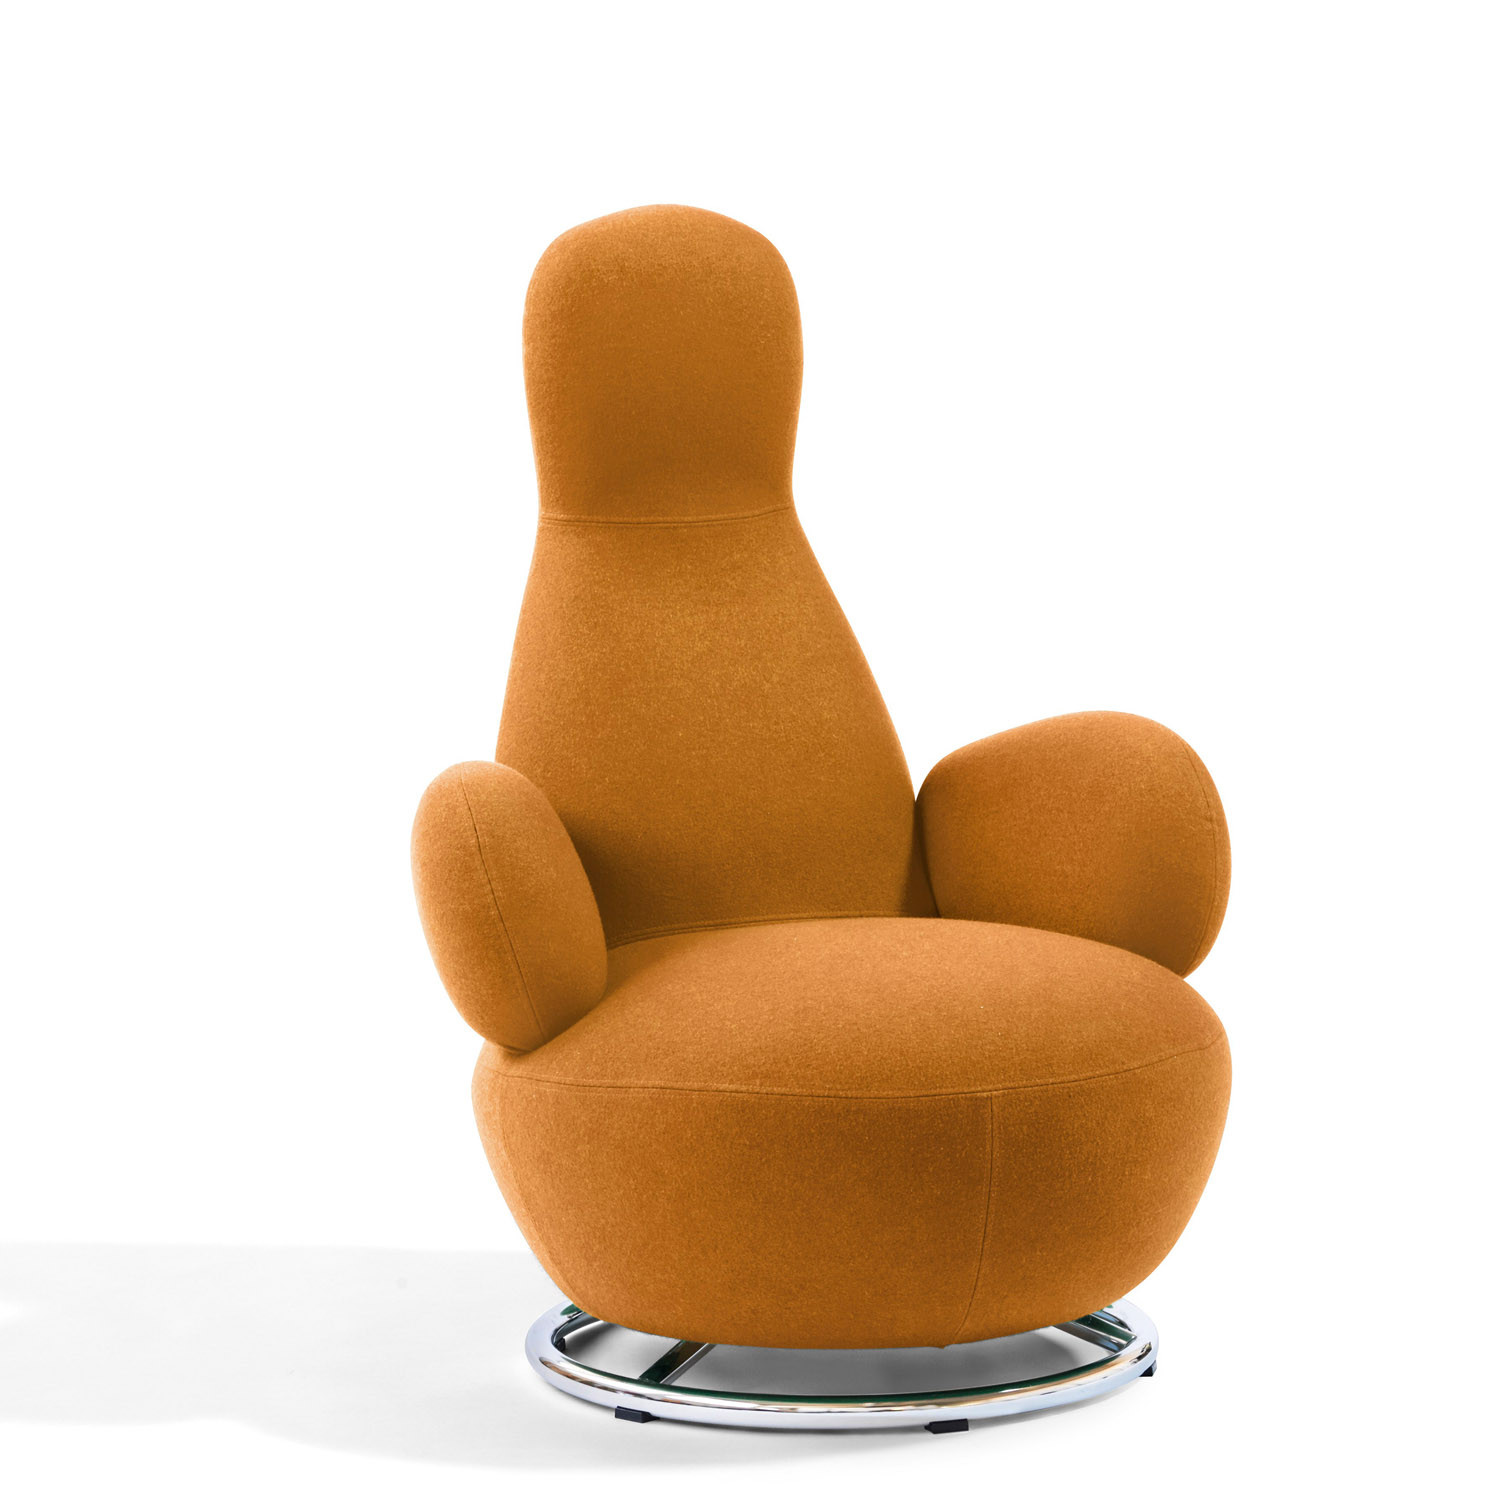 Oppo Swivel Armchair O50A from Bla Station